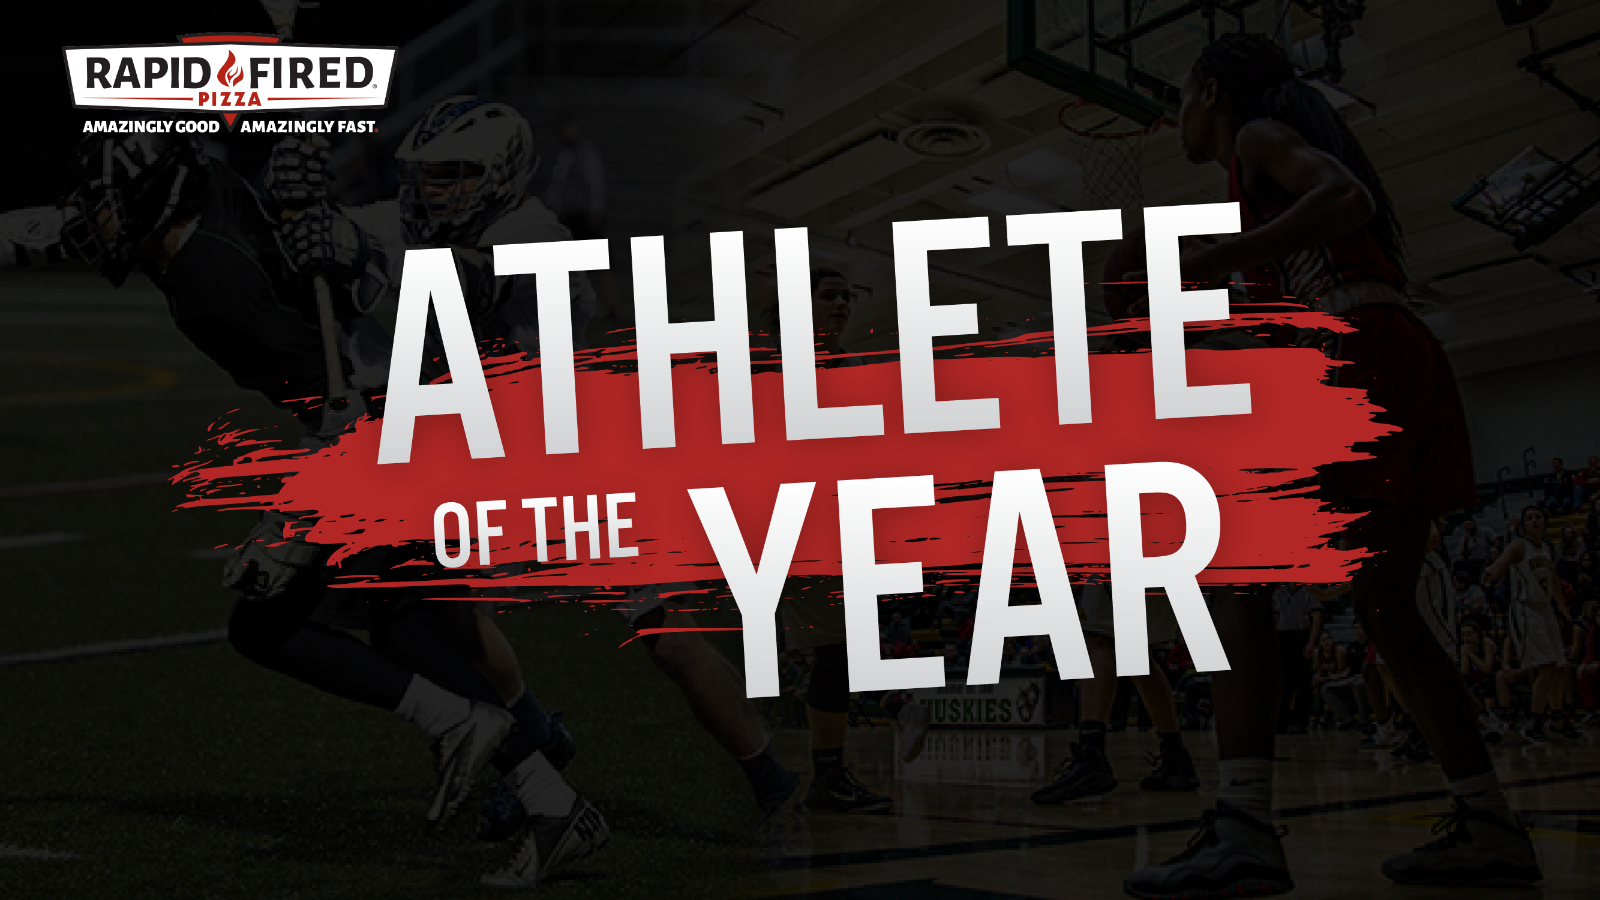 Vote Kyra Rottgen for Athlete of the Year